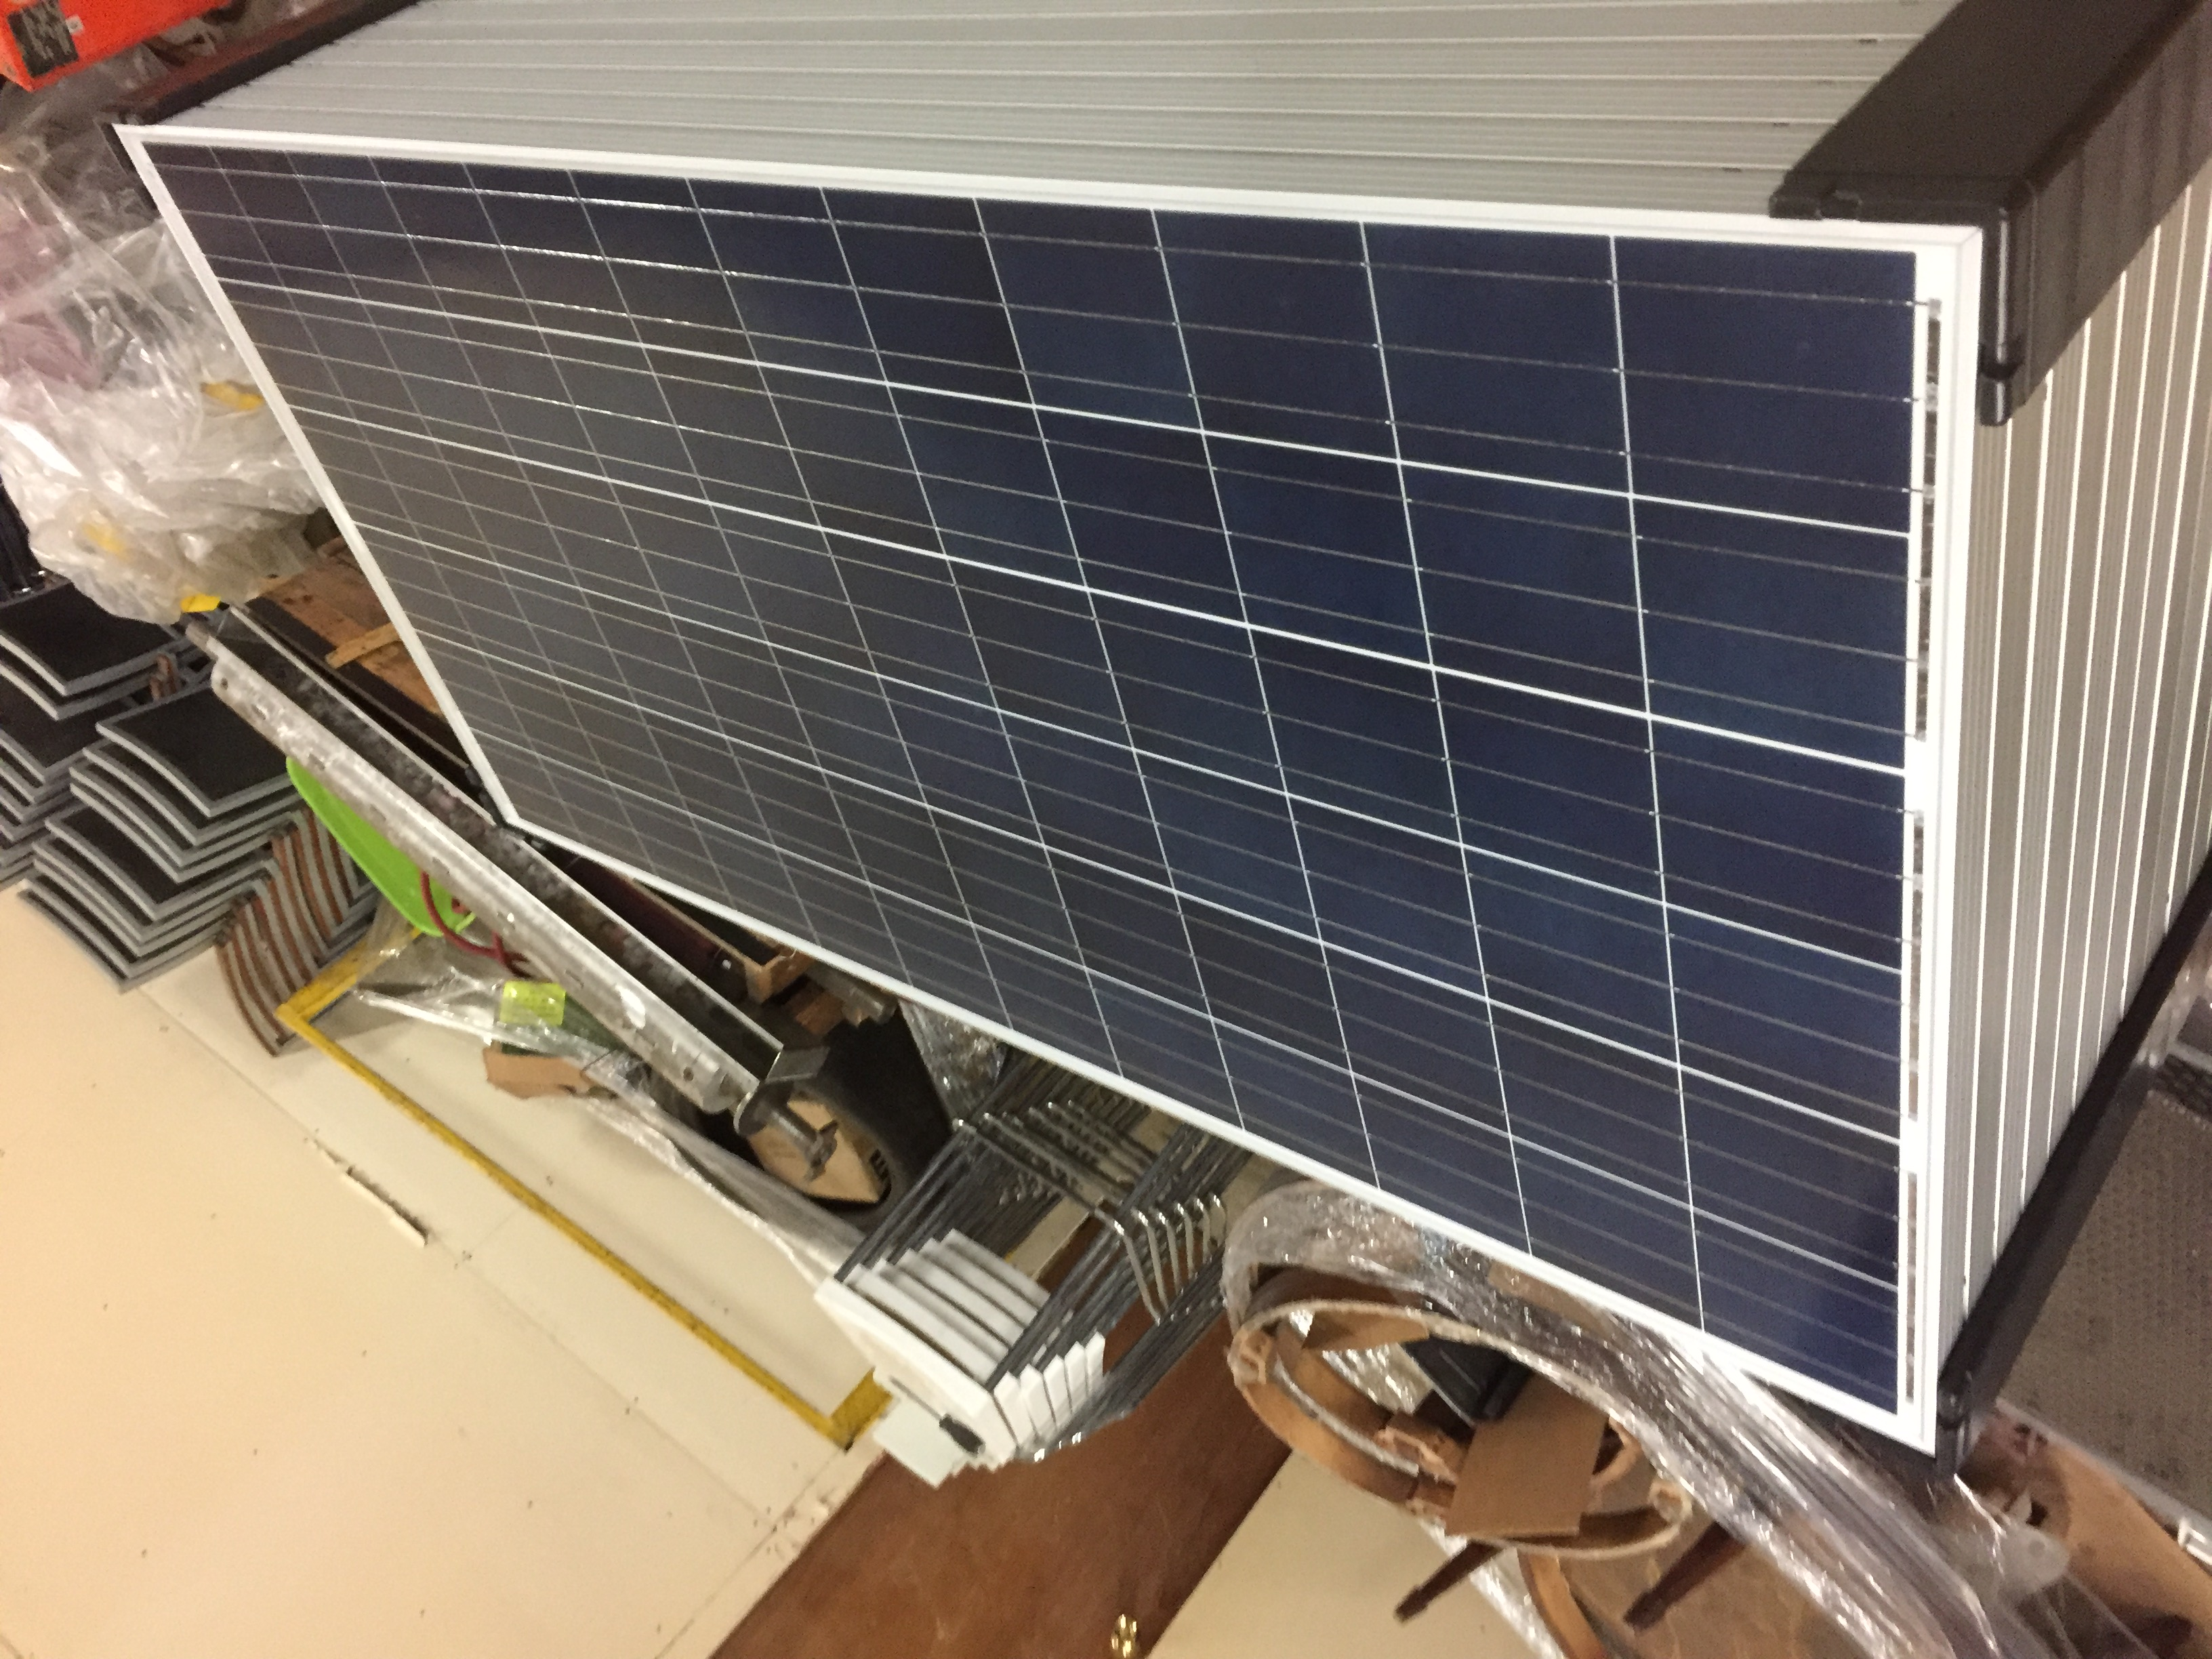 Lot 45 - LOT OF (5) 295 WATT SOLAR PANELS - (BIDDING IS PER PANEL MULTIPLIED BY 5)